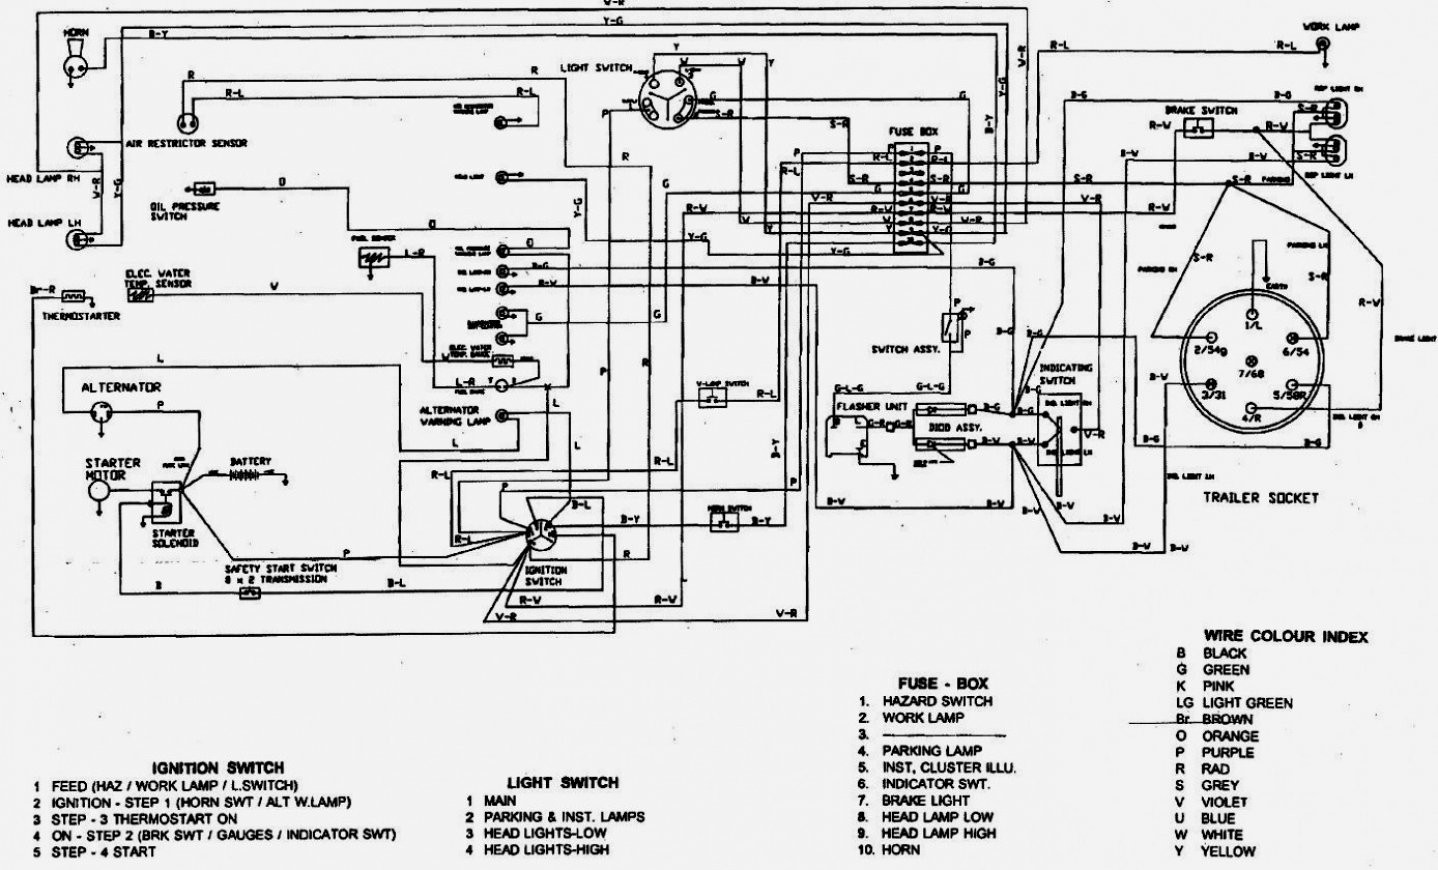 FX_5755] Wiring Diagram For Ford 7600 Tractor Free Download Download DiagramOtaxy Wigeg Mohammedshrine Librar Wiring 101